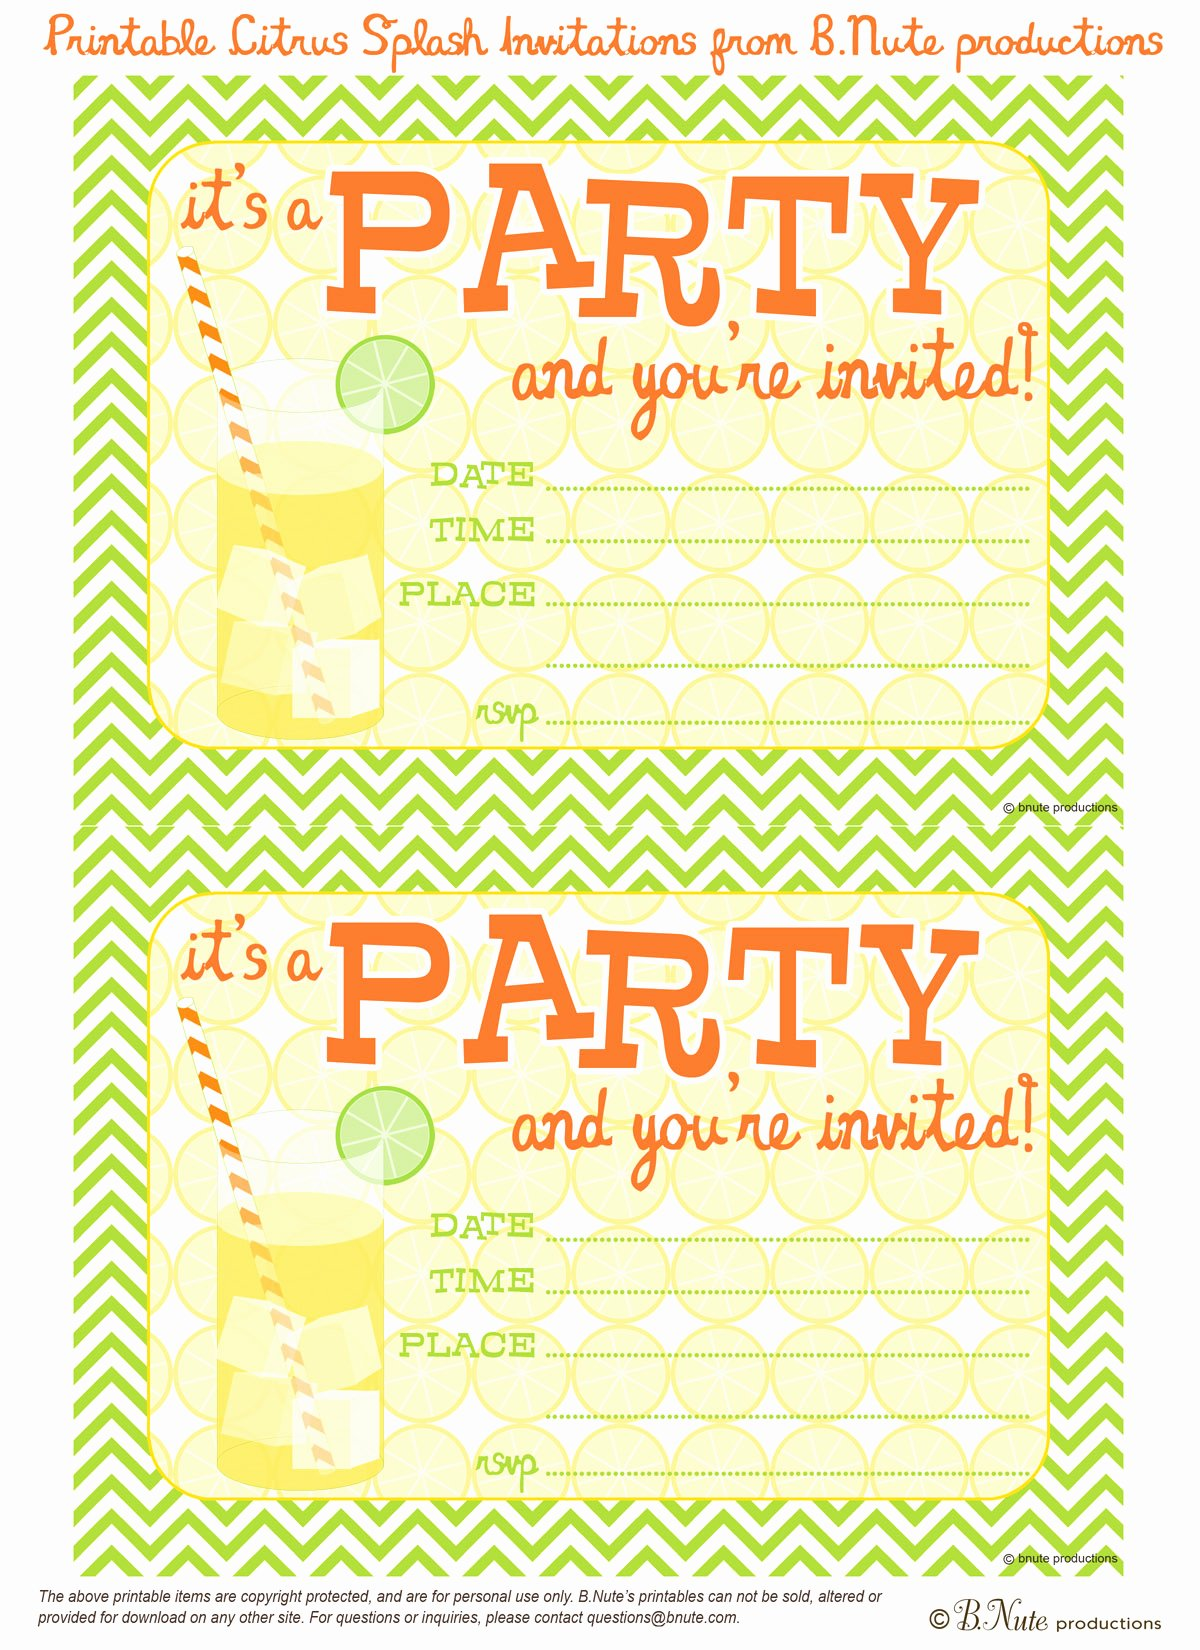 Printable Birthday Party Invitations Elegant Bnute Productions Free Printable Citrus Splash Invitations